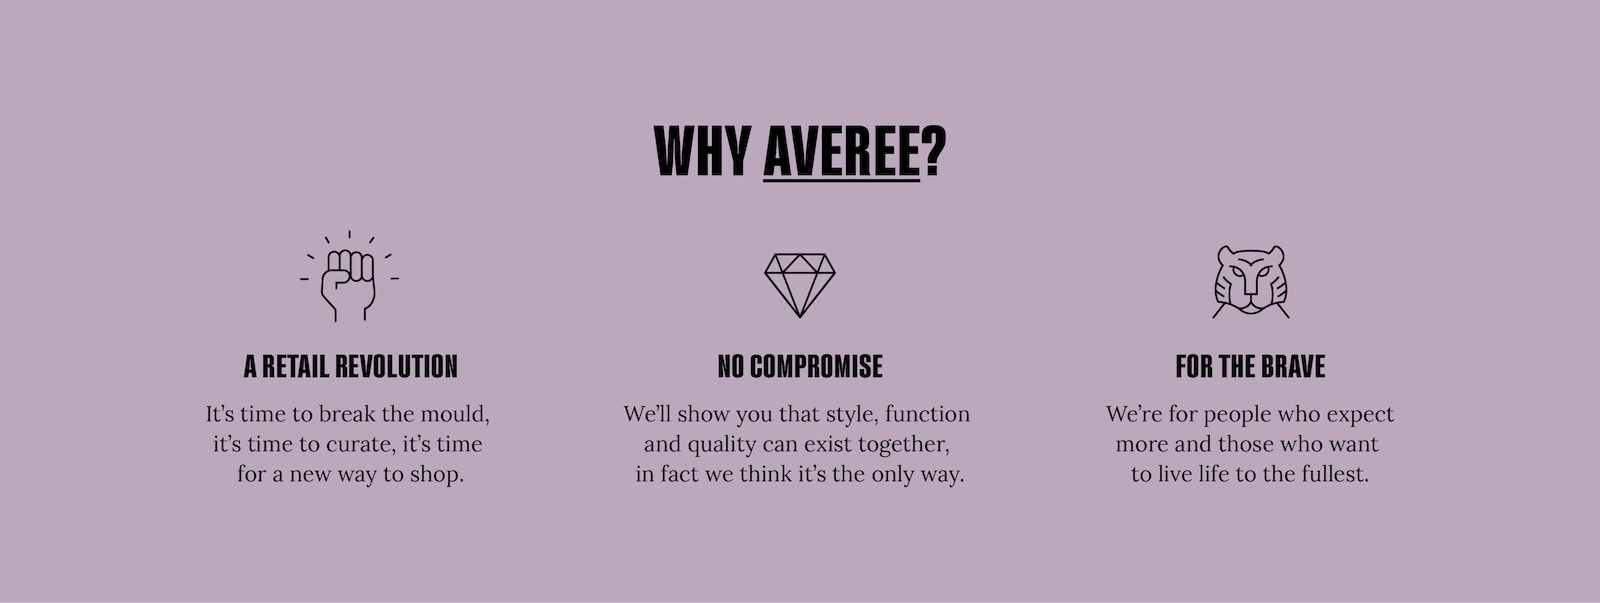 Why Averee? A retail revolution. No compromise. For the Brave.